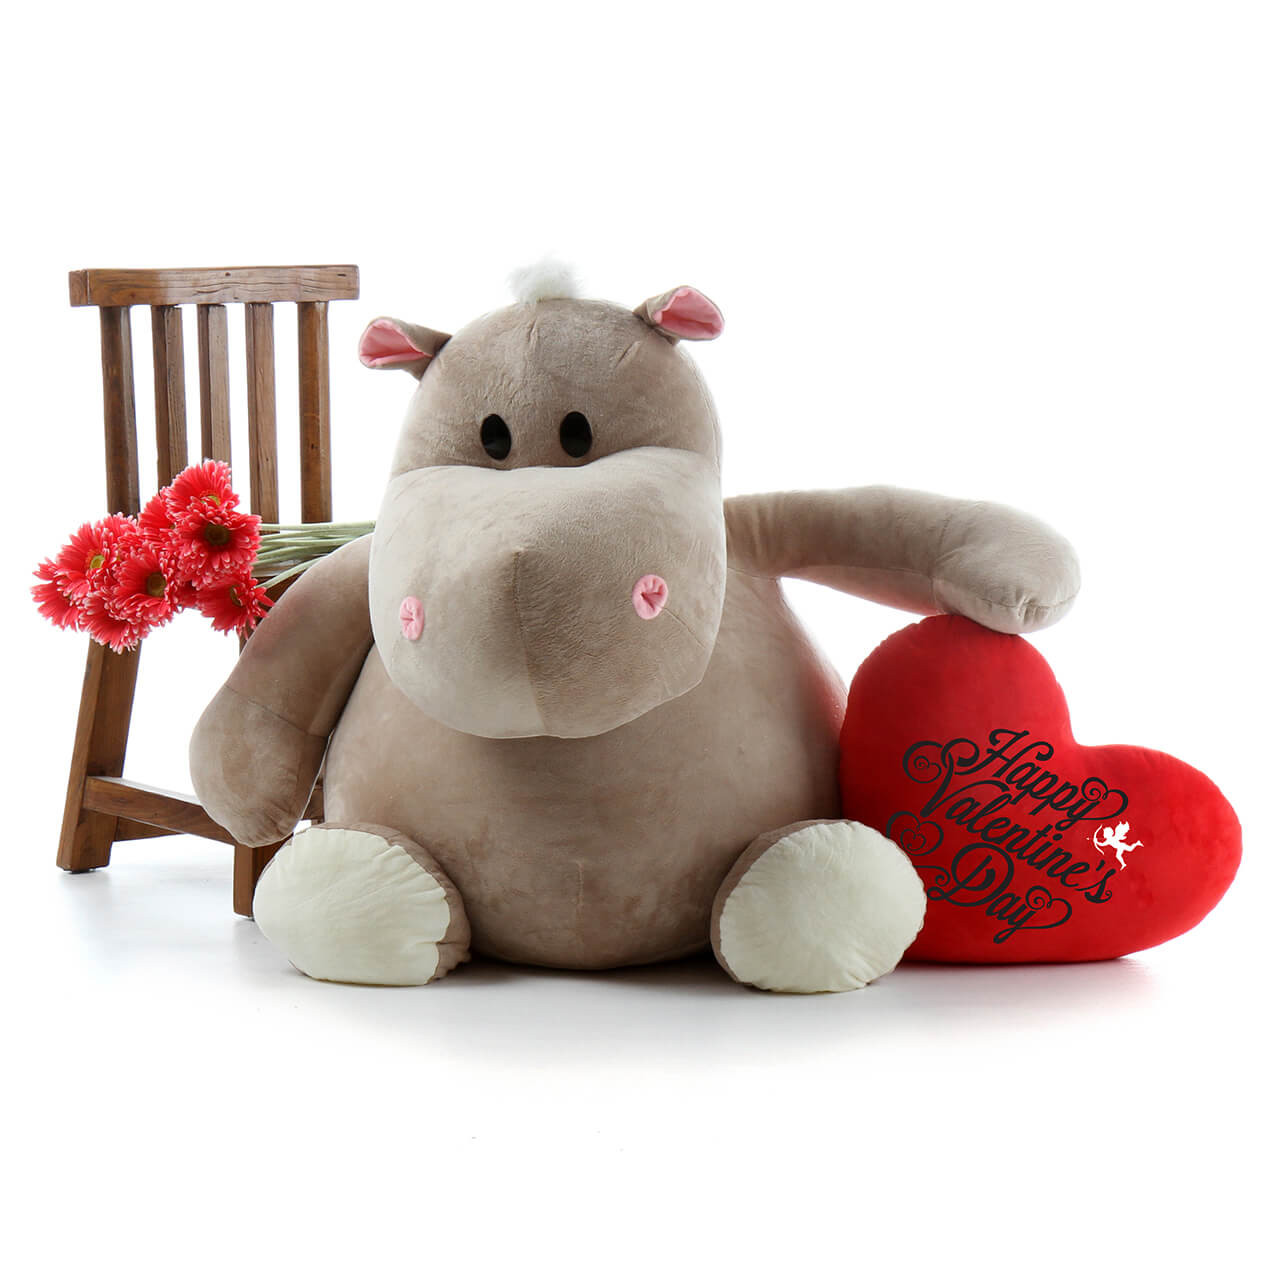 Giant Hippo Stuffed Animal Toy with Red Heart